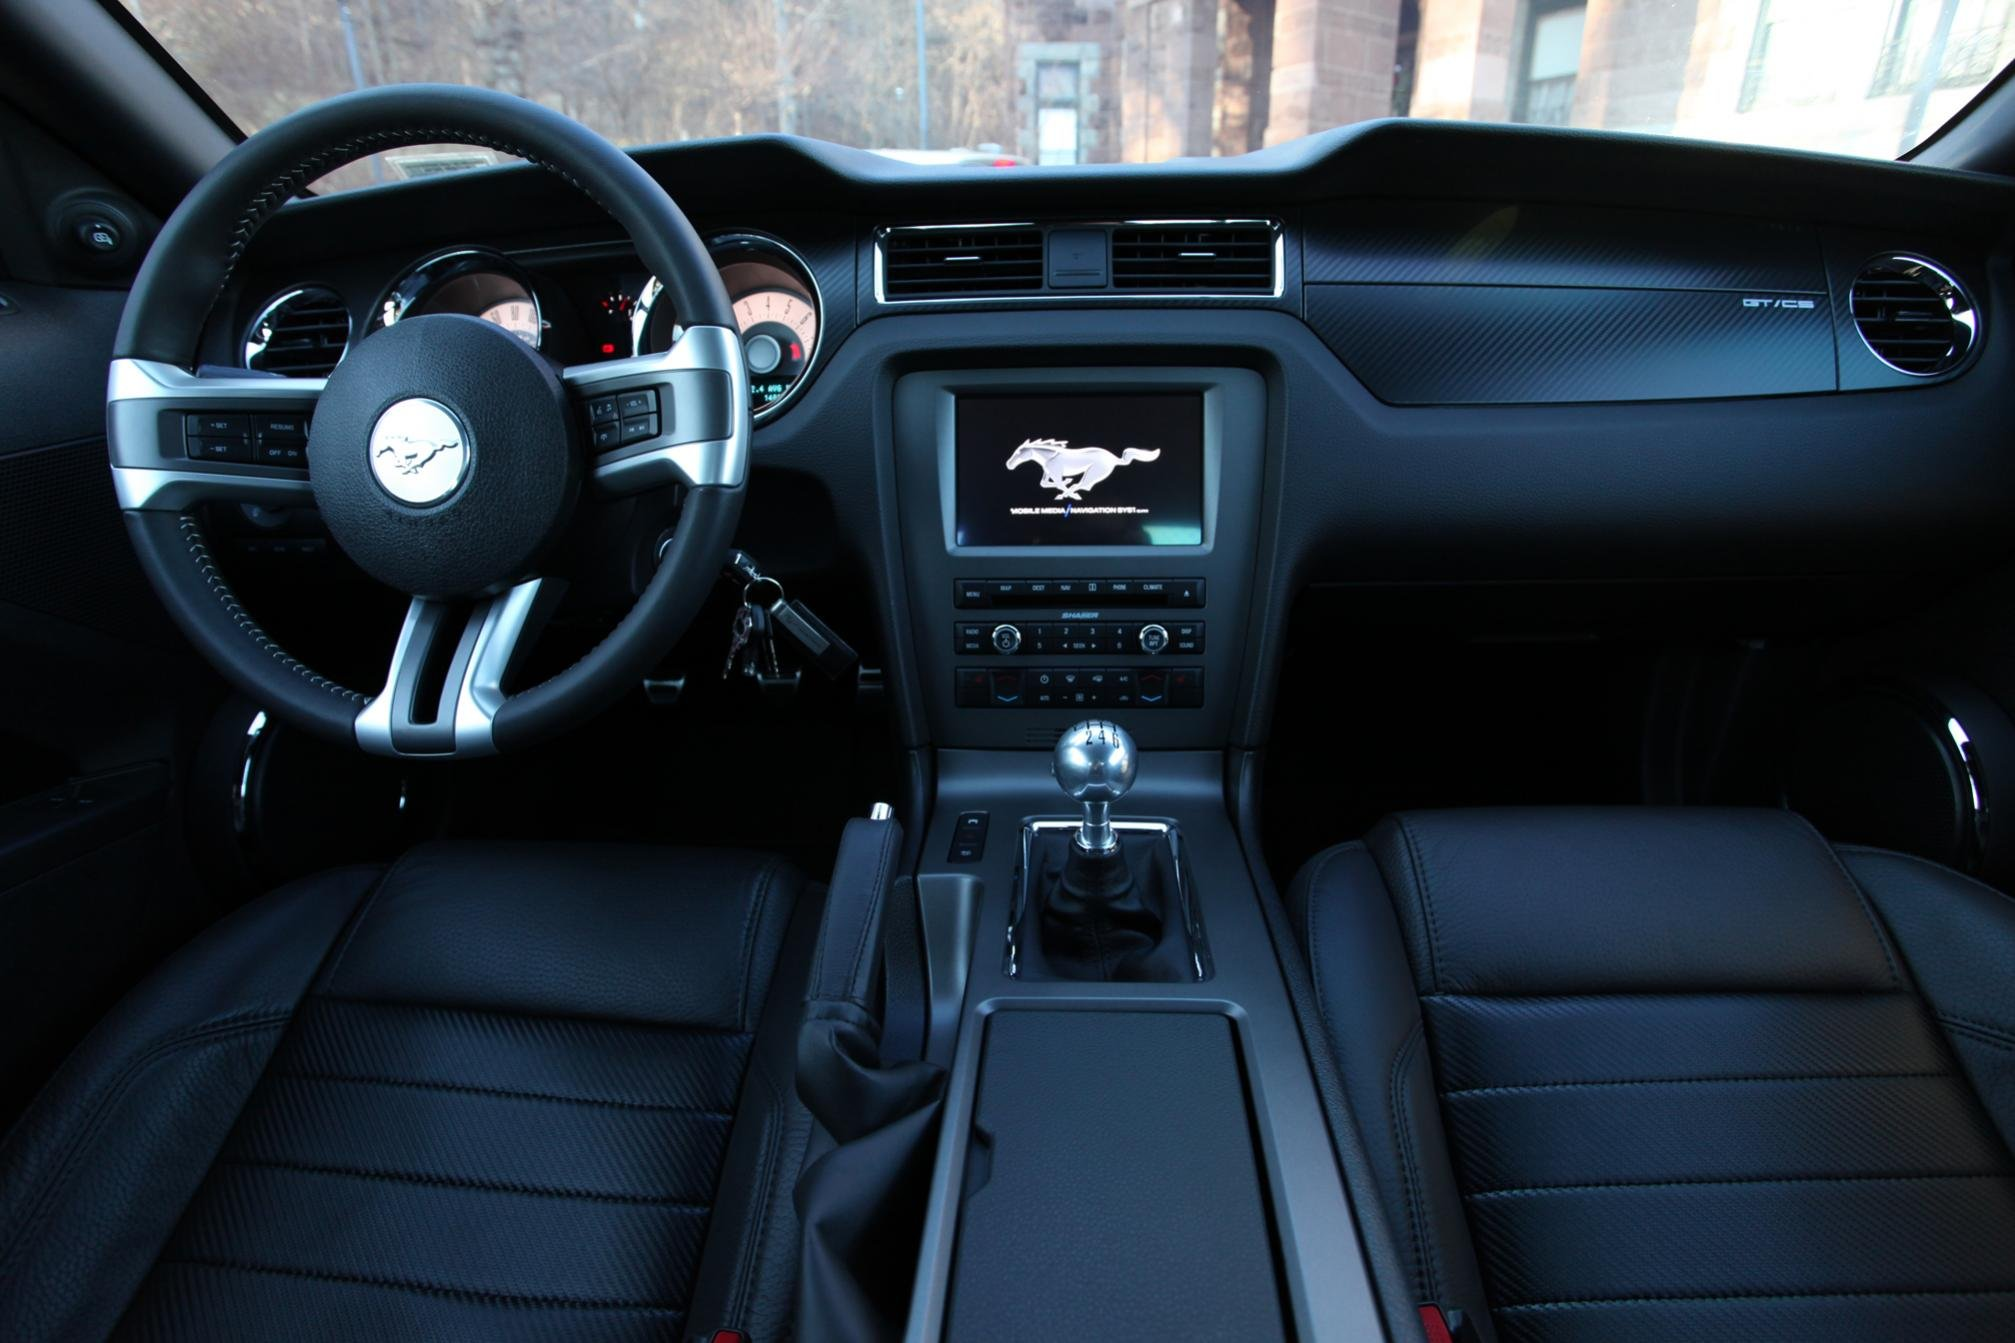 Post Your 2011 Mustang Interior Pics Here Please Page 4 Ford